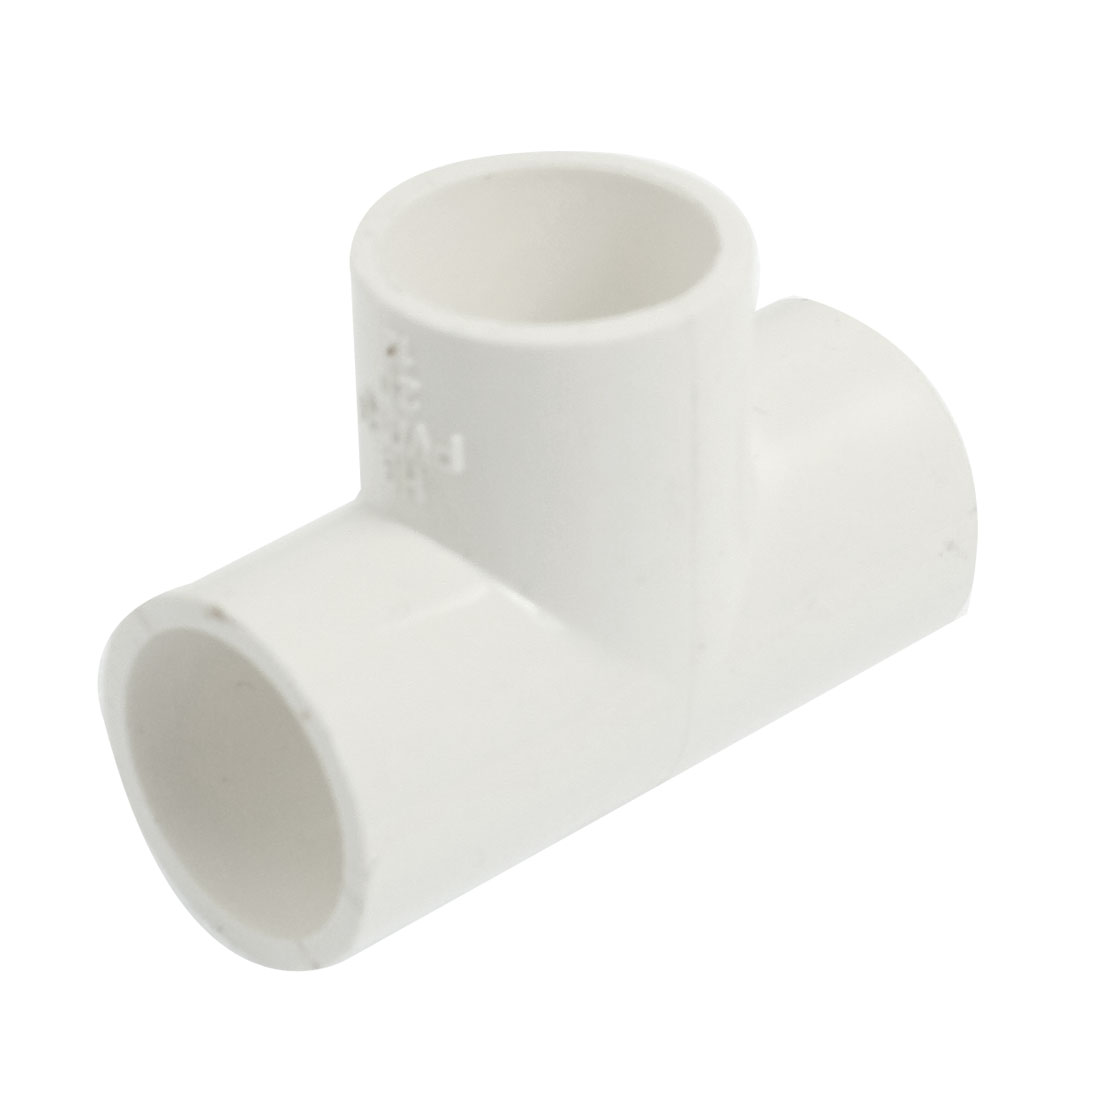 Replacement PVC-U 20mm Drinking Water Pipe Tee Shape Adapter Connector White